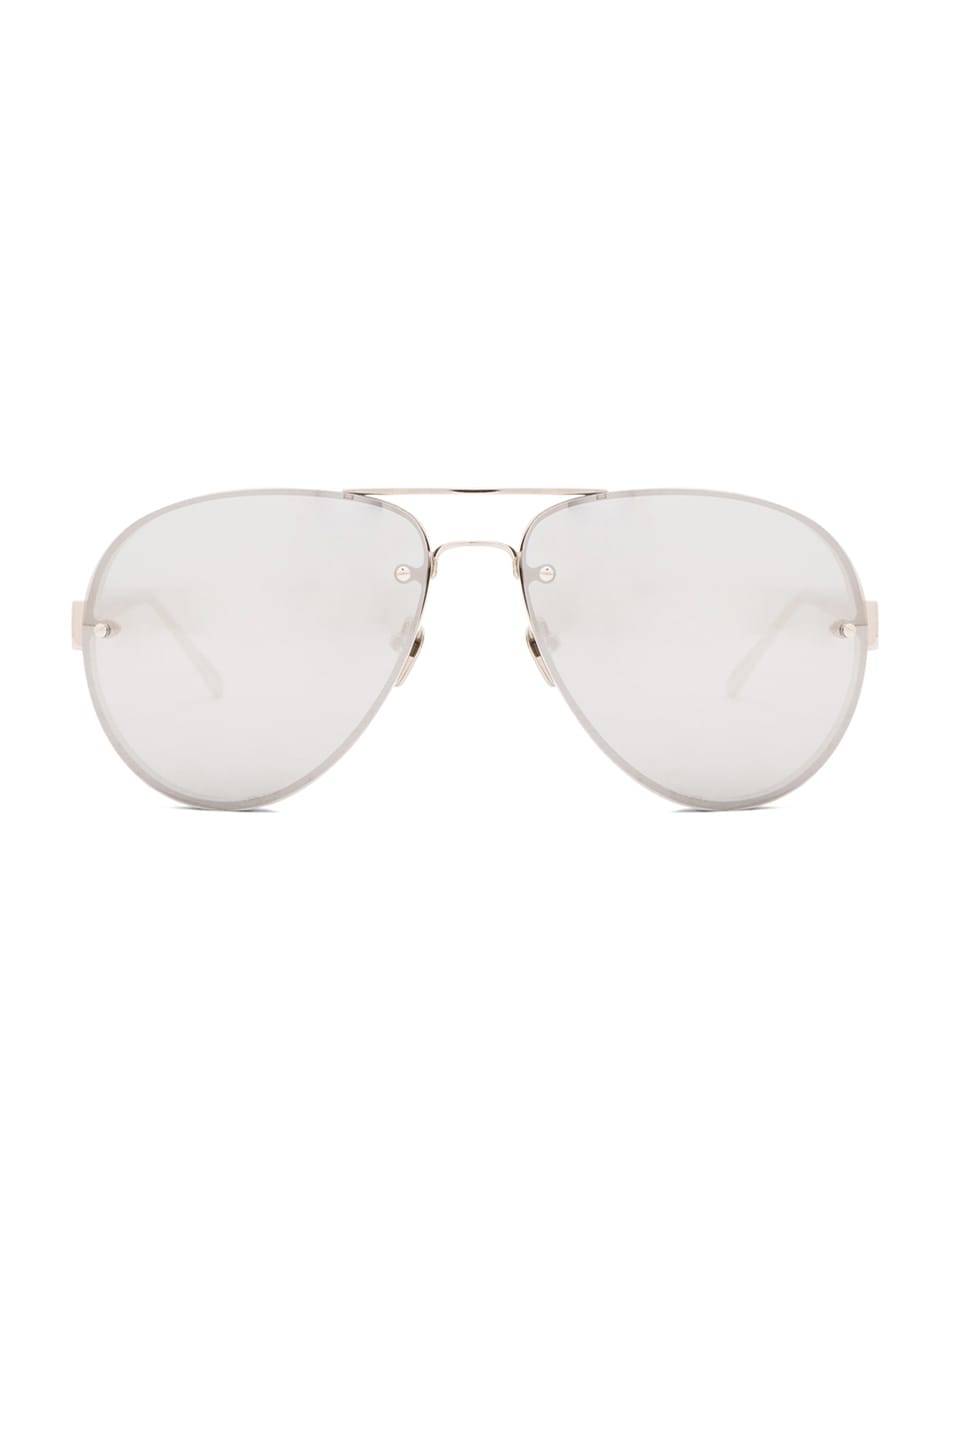 Image 1 of Linda Farrow Aviator Sunglasses in White Gold Platinum